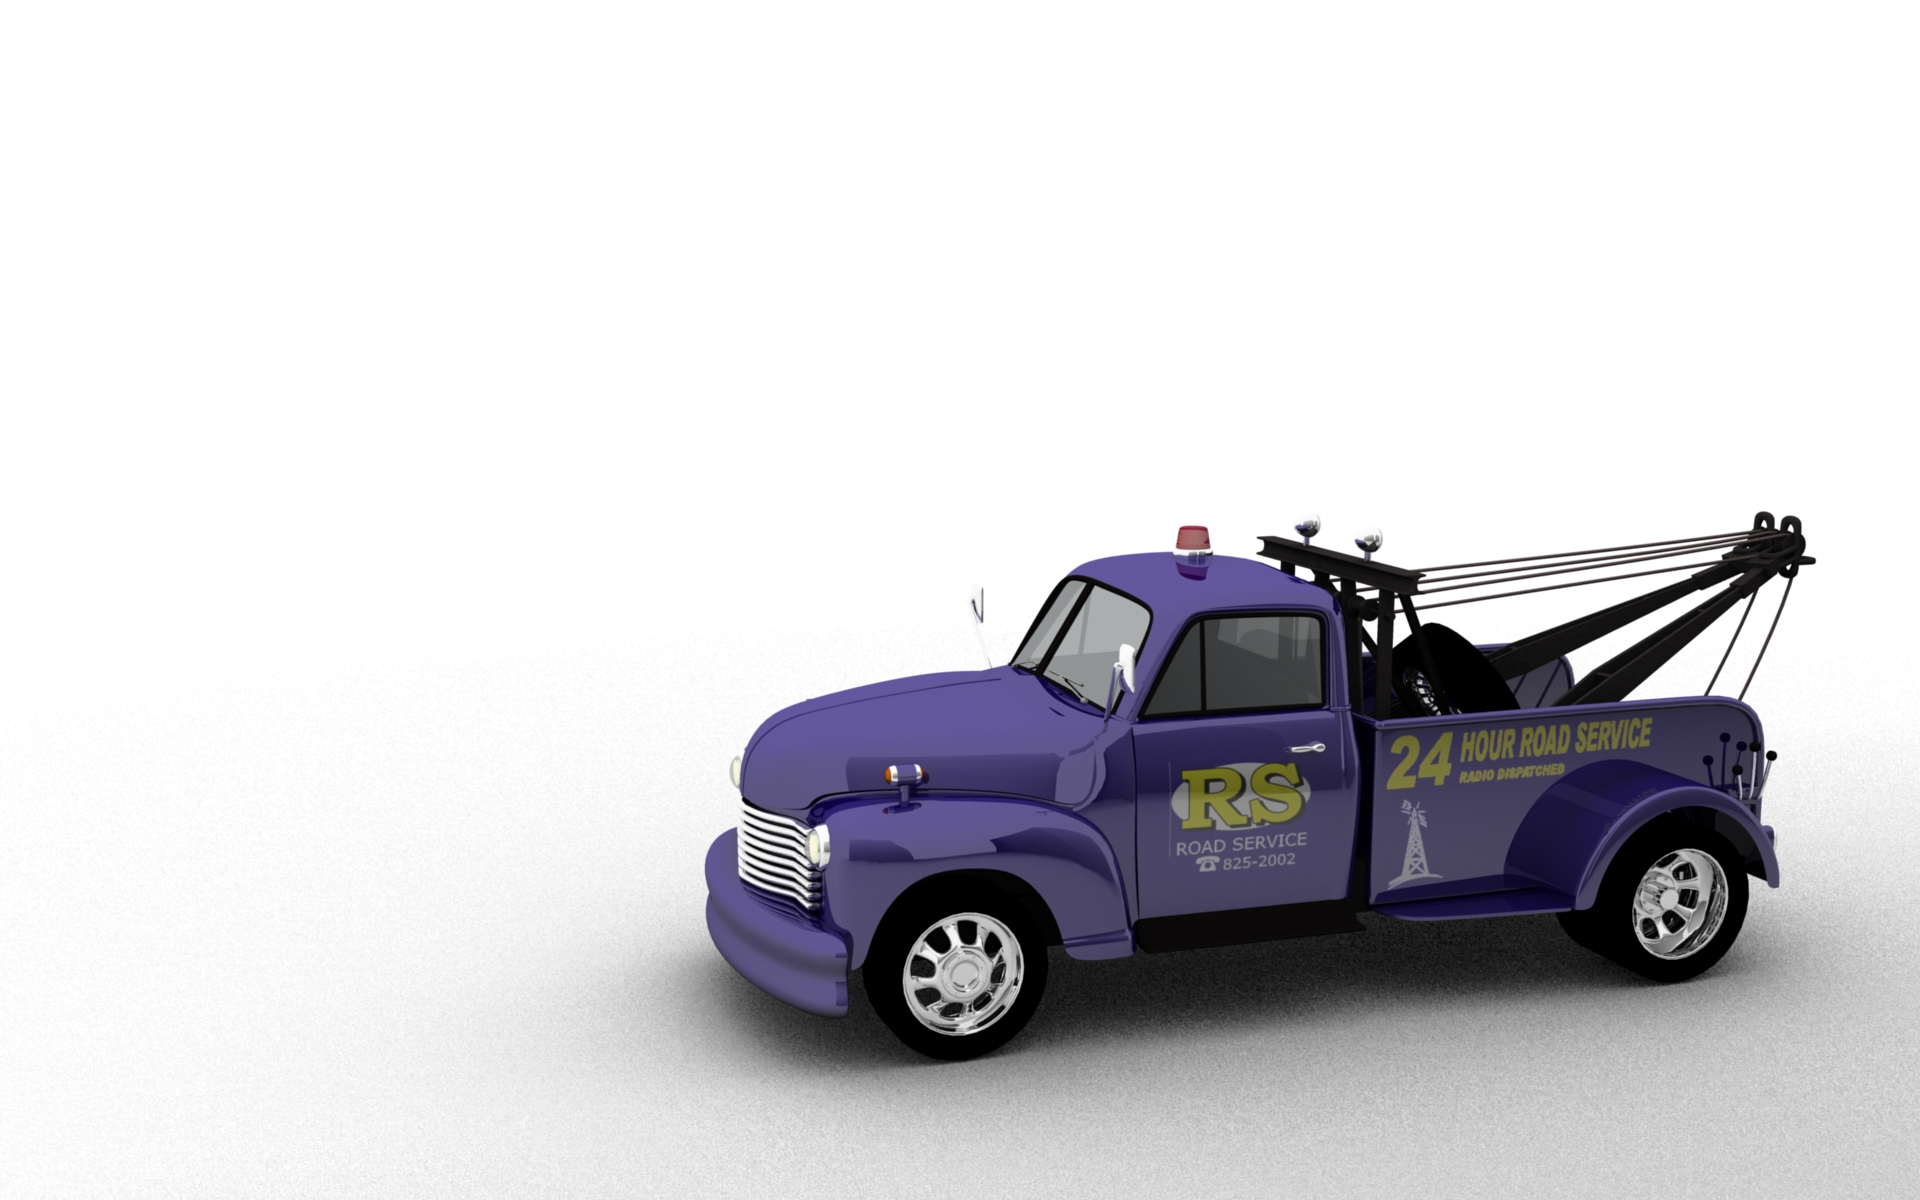 Wallpaper – 1947 Chevrolet Truck, Blender 3D Model » DIY